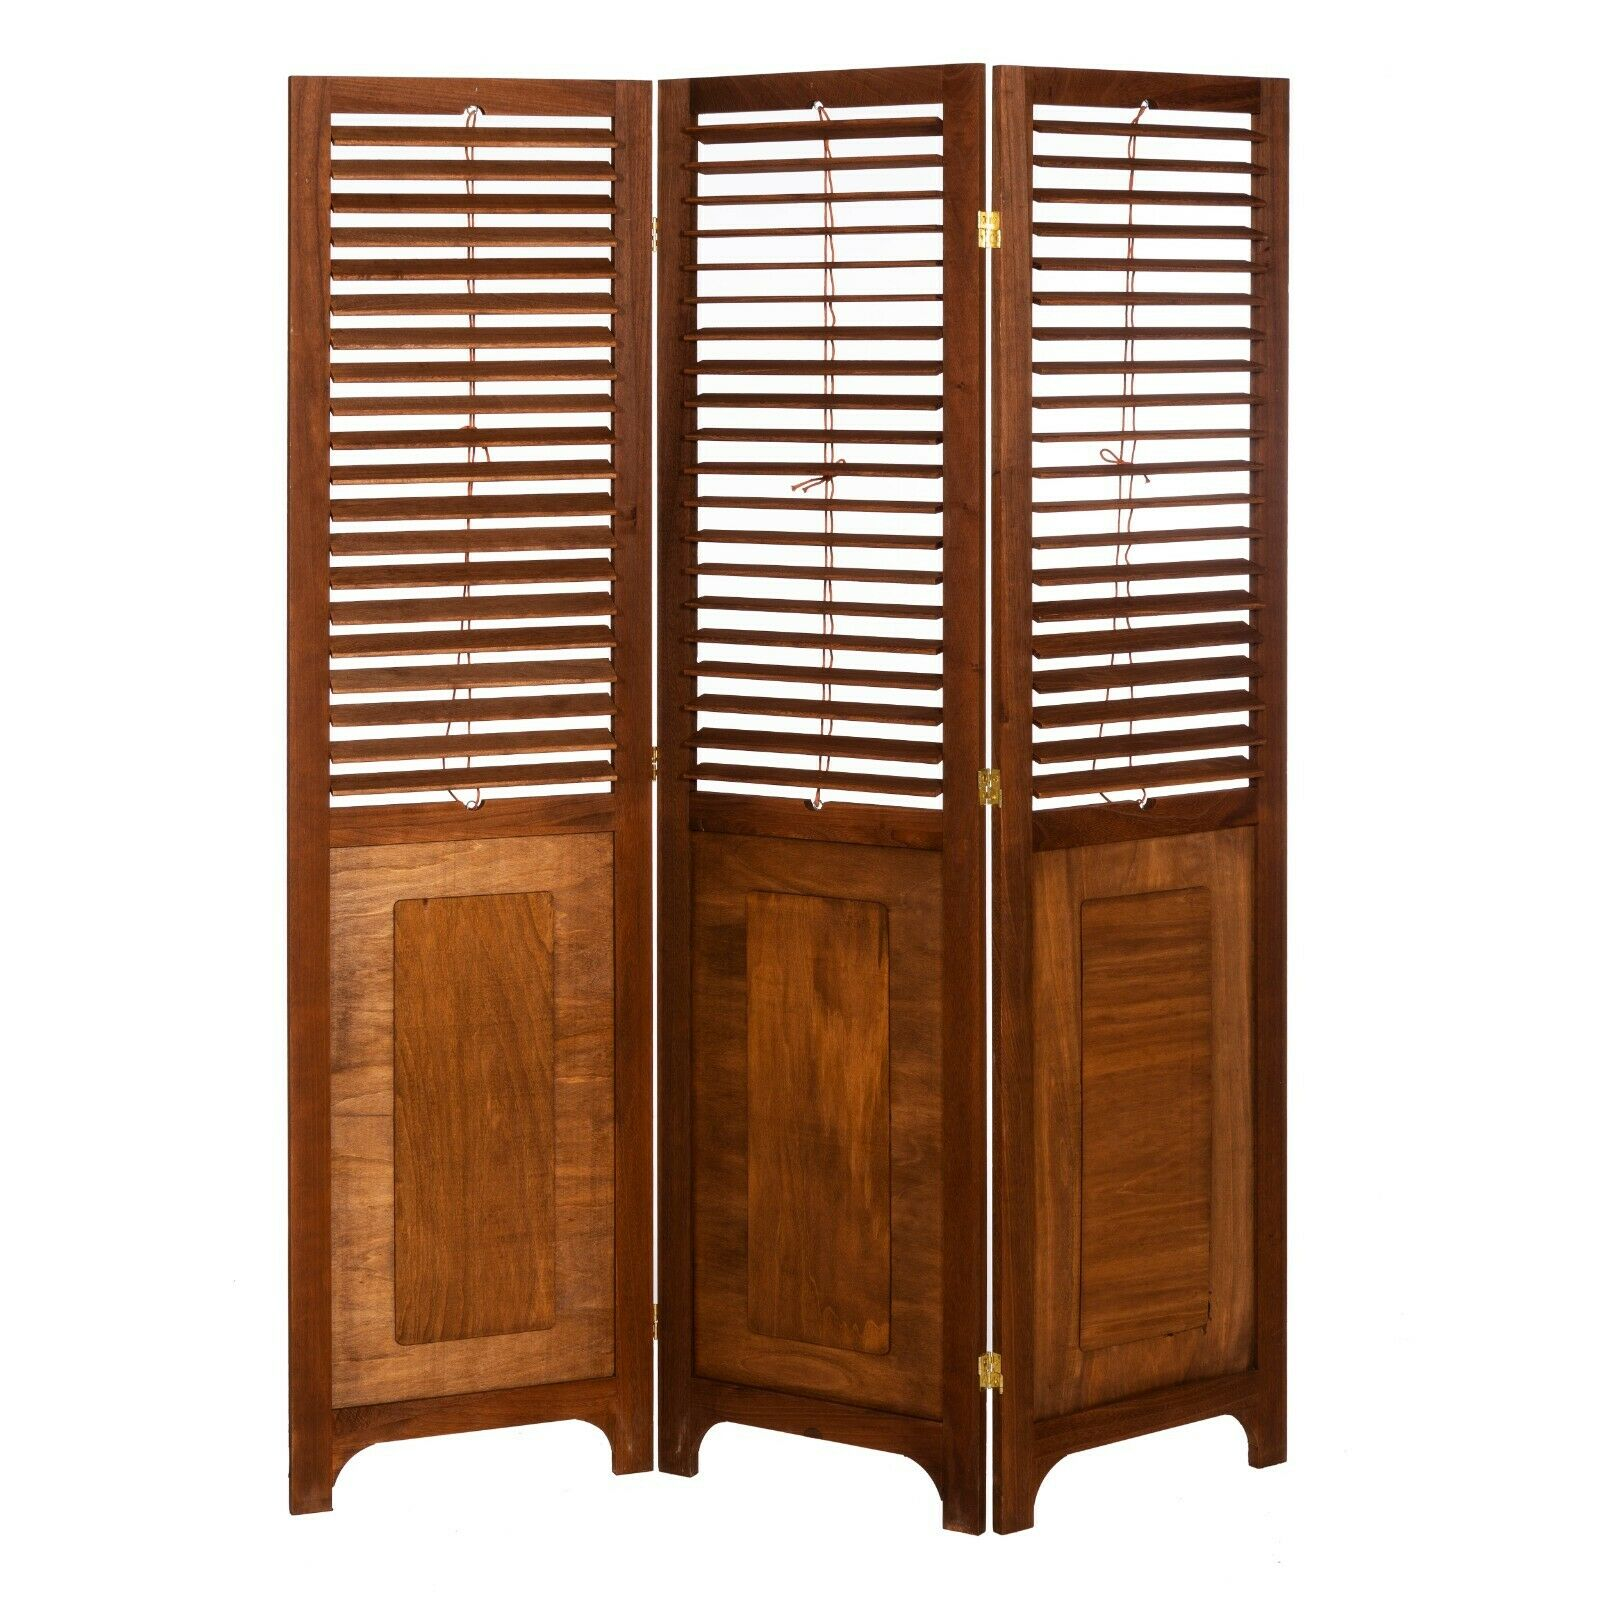 3 Panel Solid Wood Screen Room Divider with Adjustable Shutt